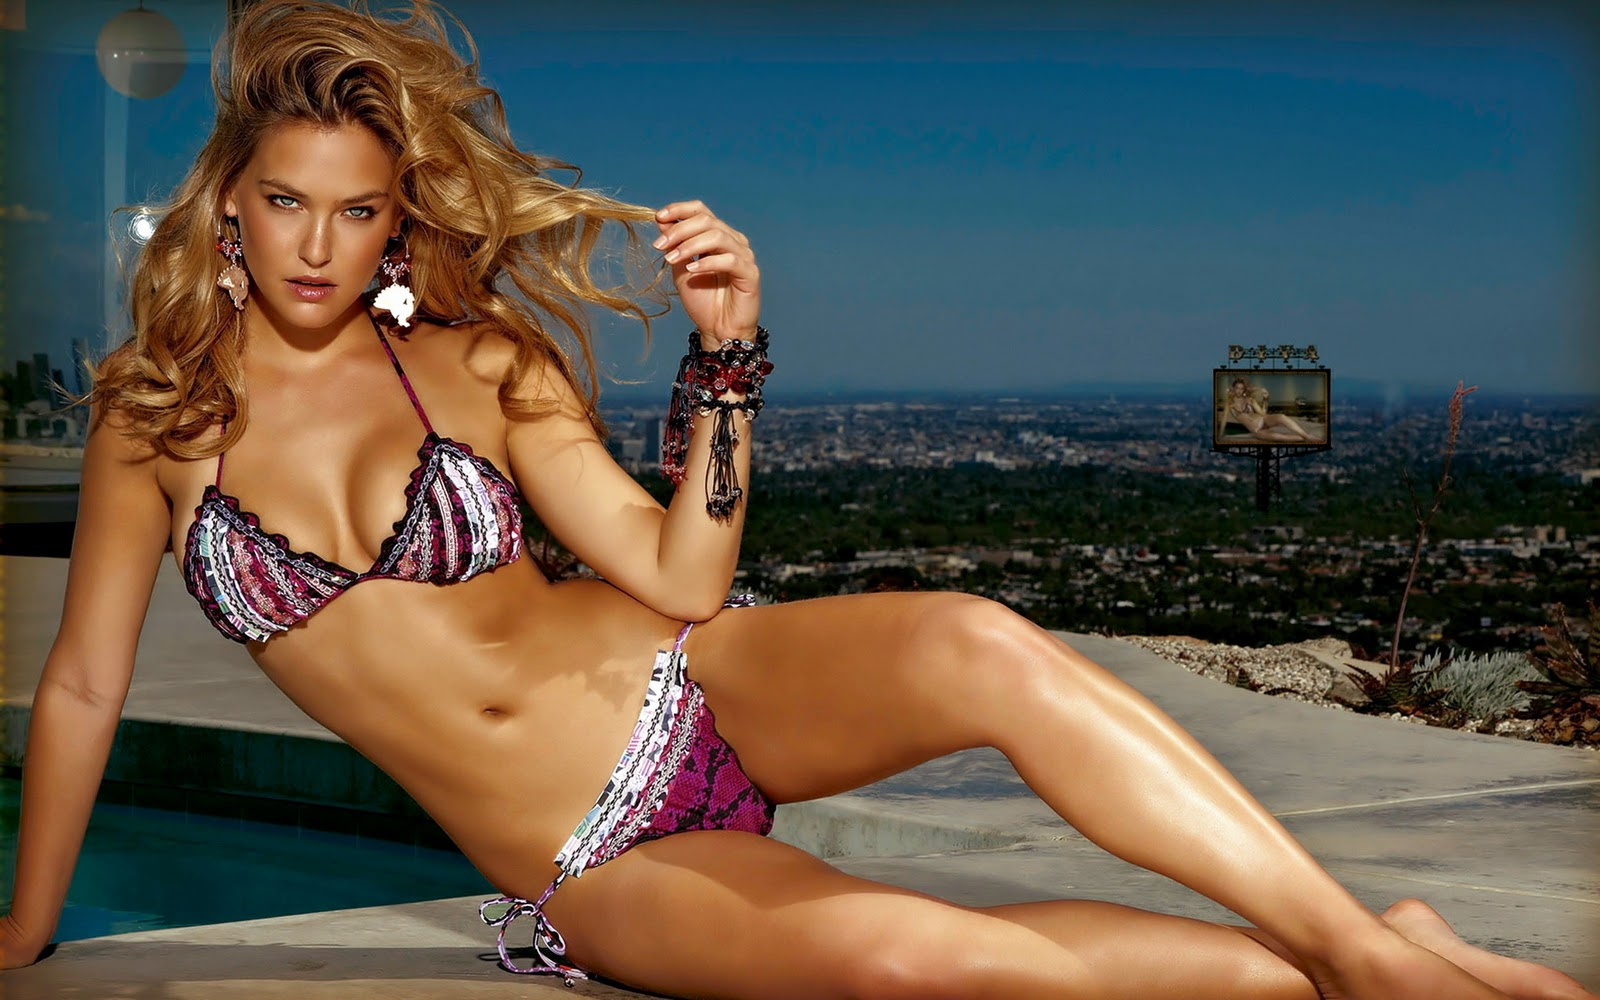 http://3.bp.blogspot.com/-me2rAWBaOJs/UA6OEsMoFFI/AAAAAAAAAjE/AtMzc6f4wKs/s1600/hotmoviepictures-desktop-celebrity-babe-hot-bikini-wallpapers-hd-sexy-bikini-wallpaper-bar-refaeli-black-bikini+(5).jpg